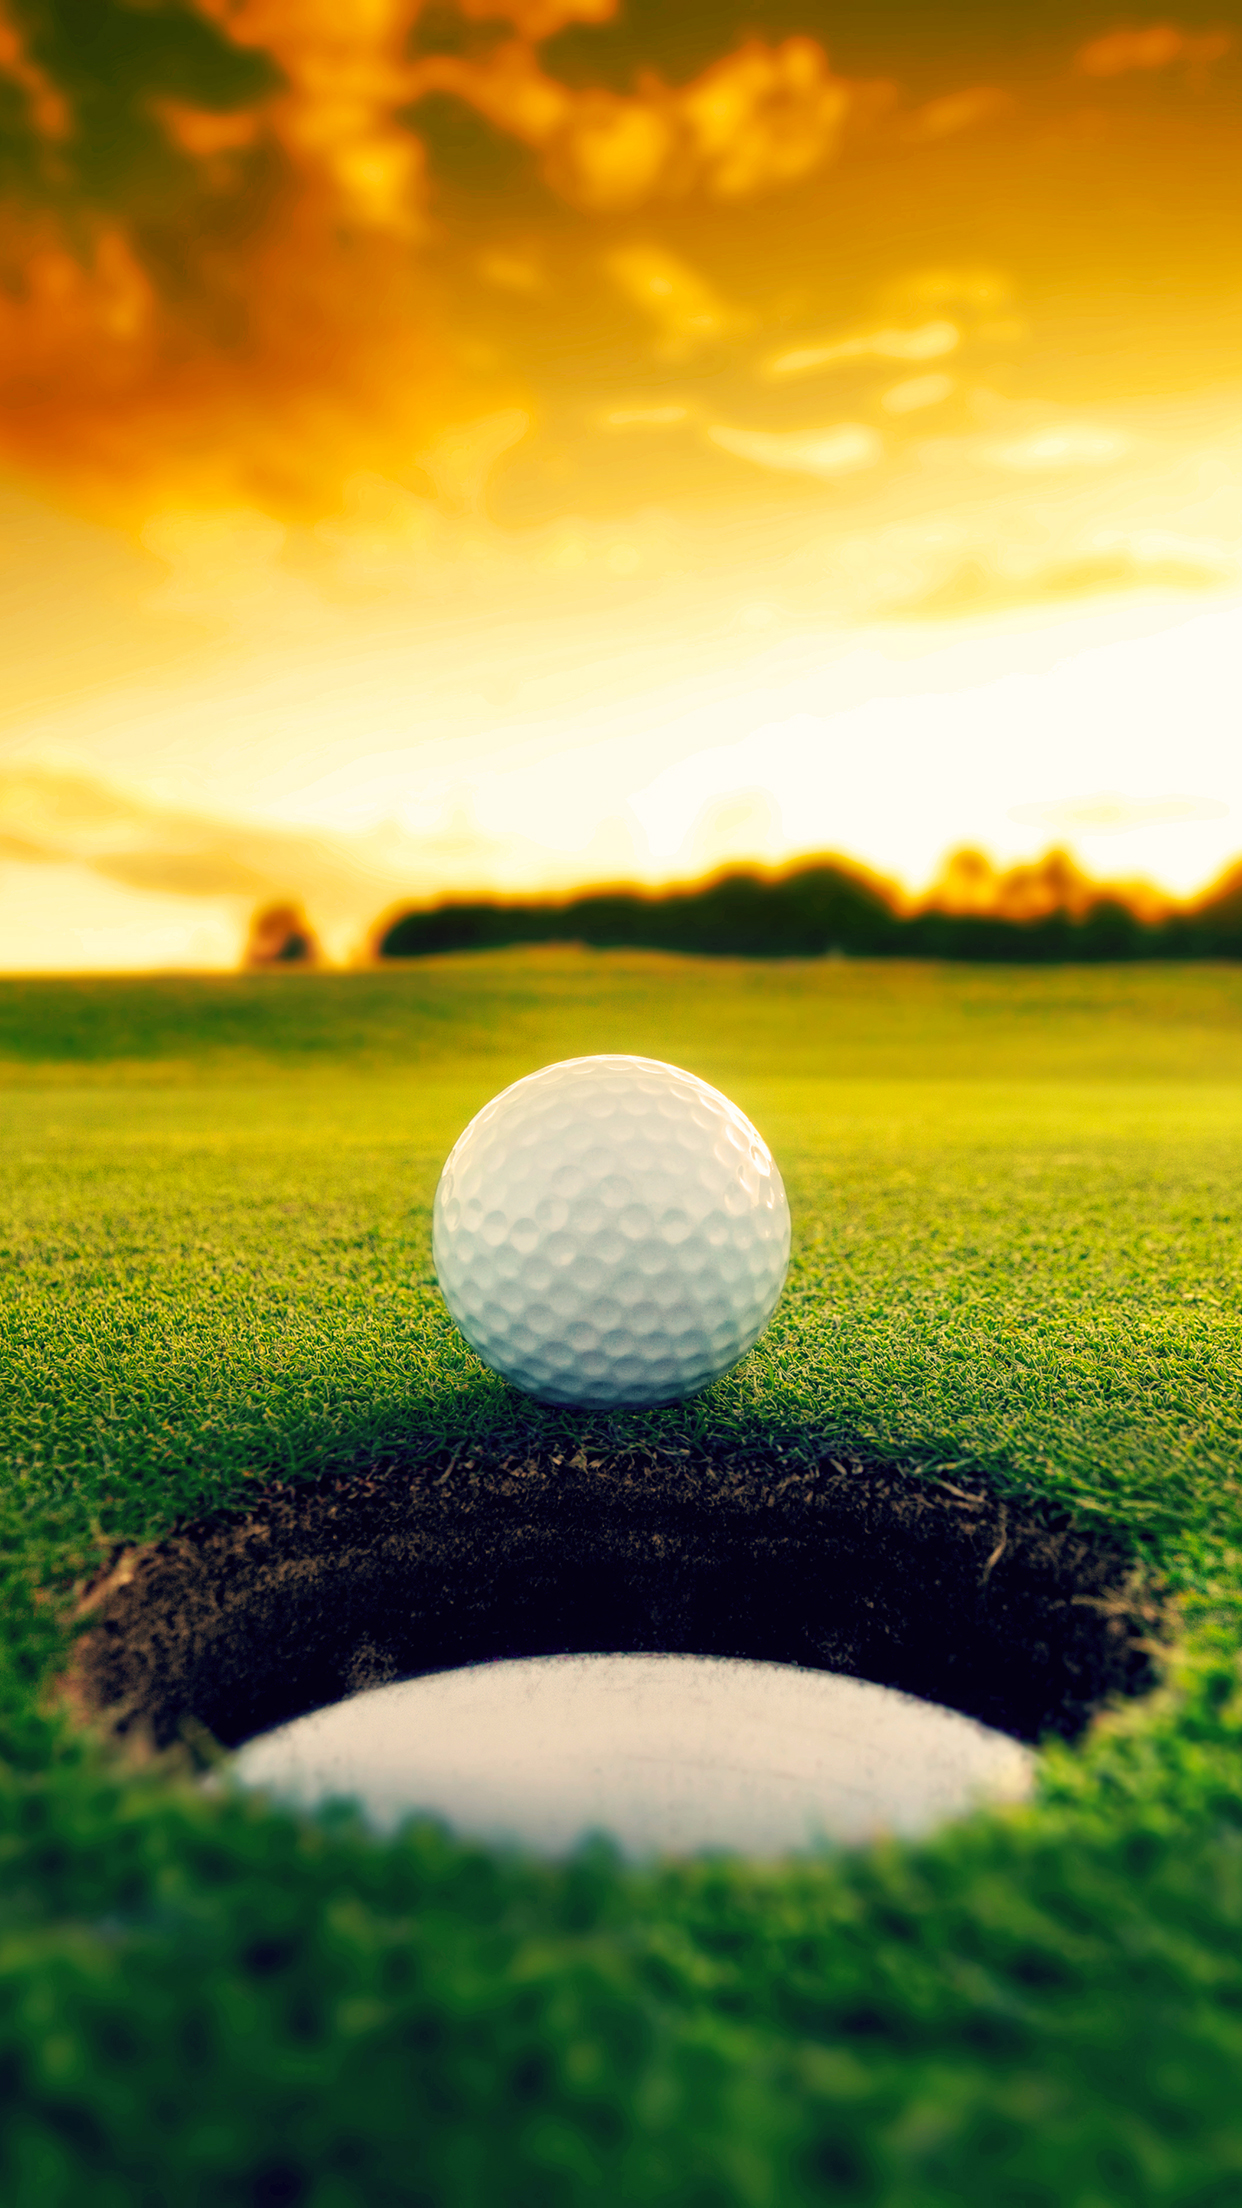 iphone golf wallpapers images pictures becuo